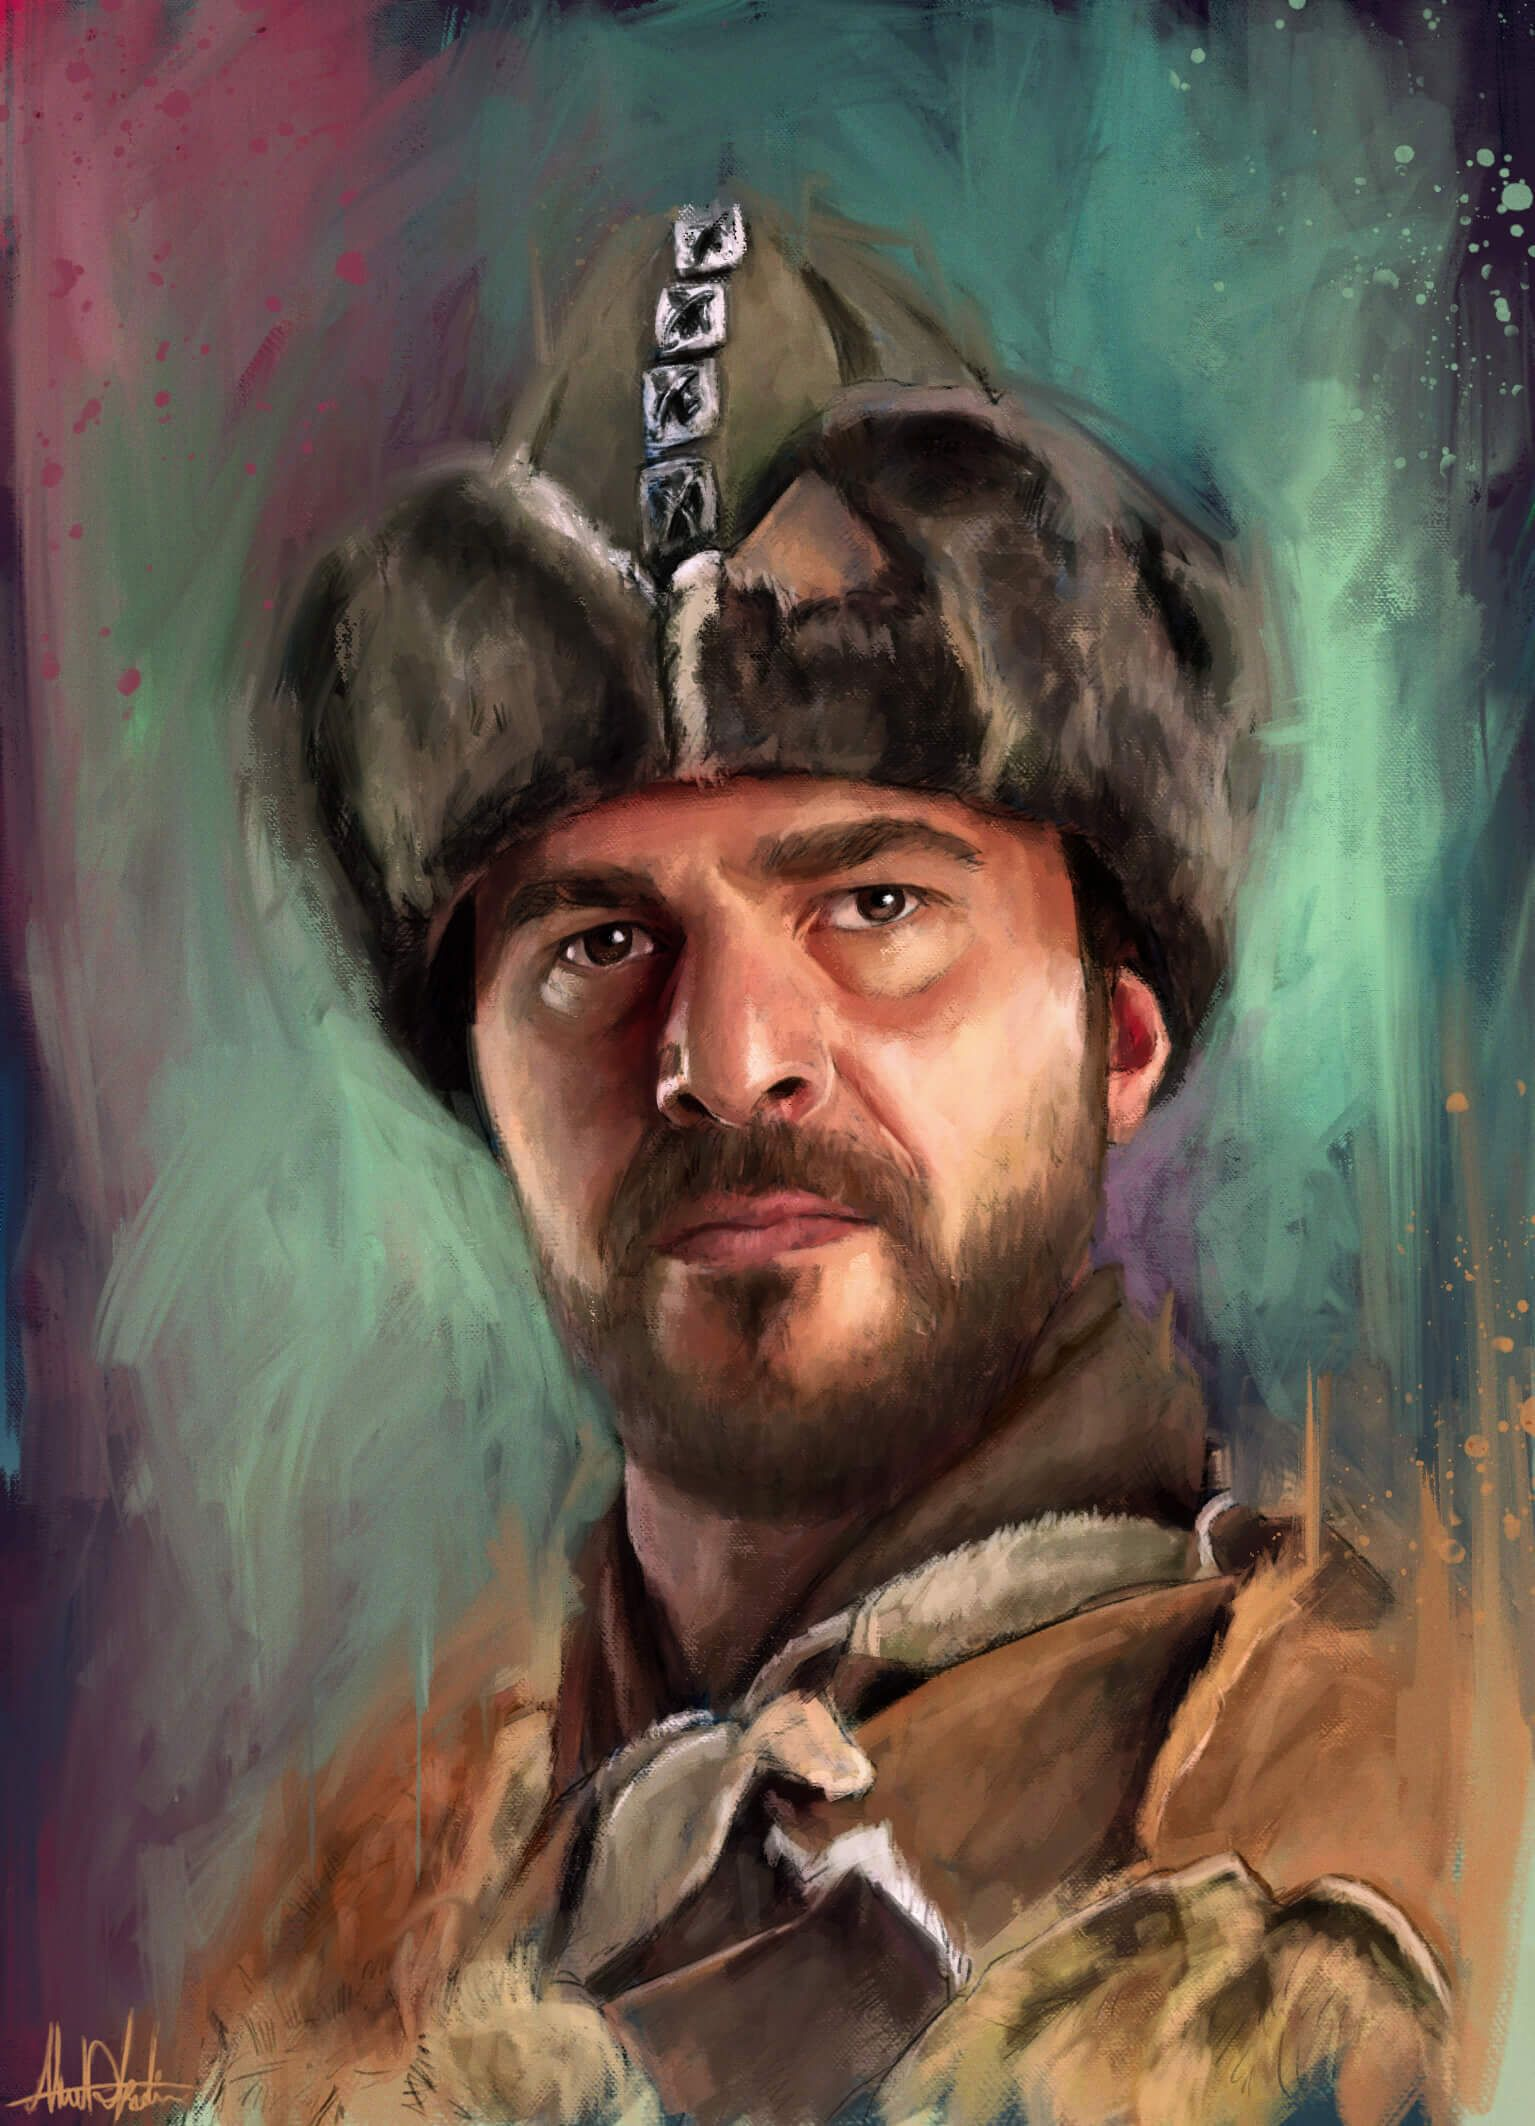 Ertuğrul sketch for sale looks like modern oil painting i start with rough sketching or pencil drawing then use wacom and photoshop my favorite art